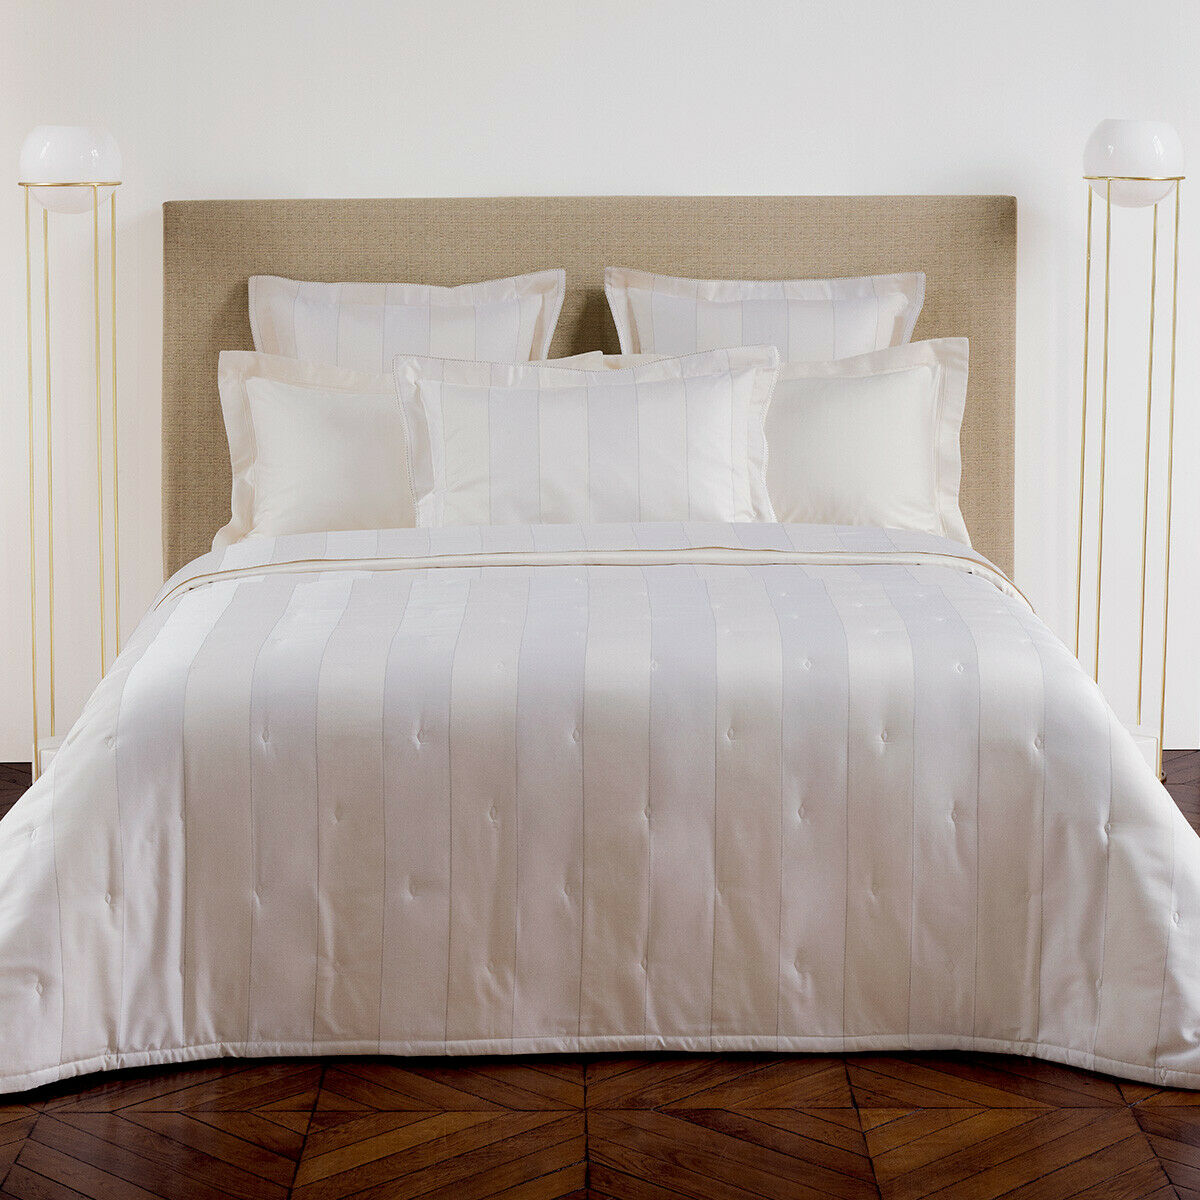 YVES DELORME - ANTIC DUVET COVER 100% COTTON 300TC SATEEN 60% OFF RRP